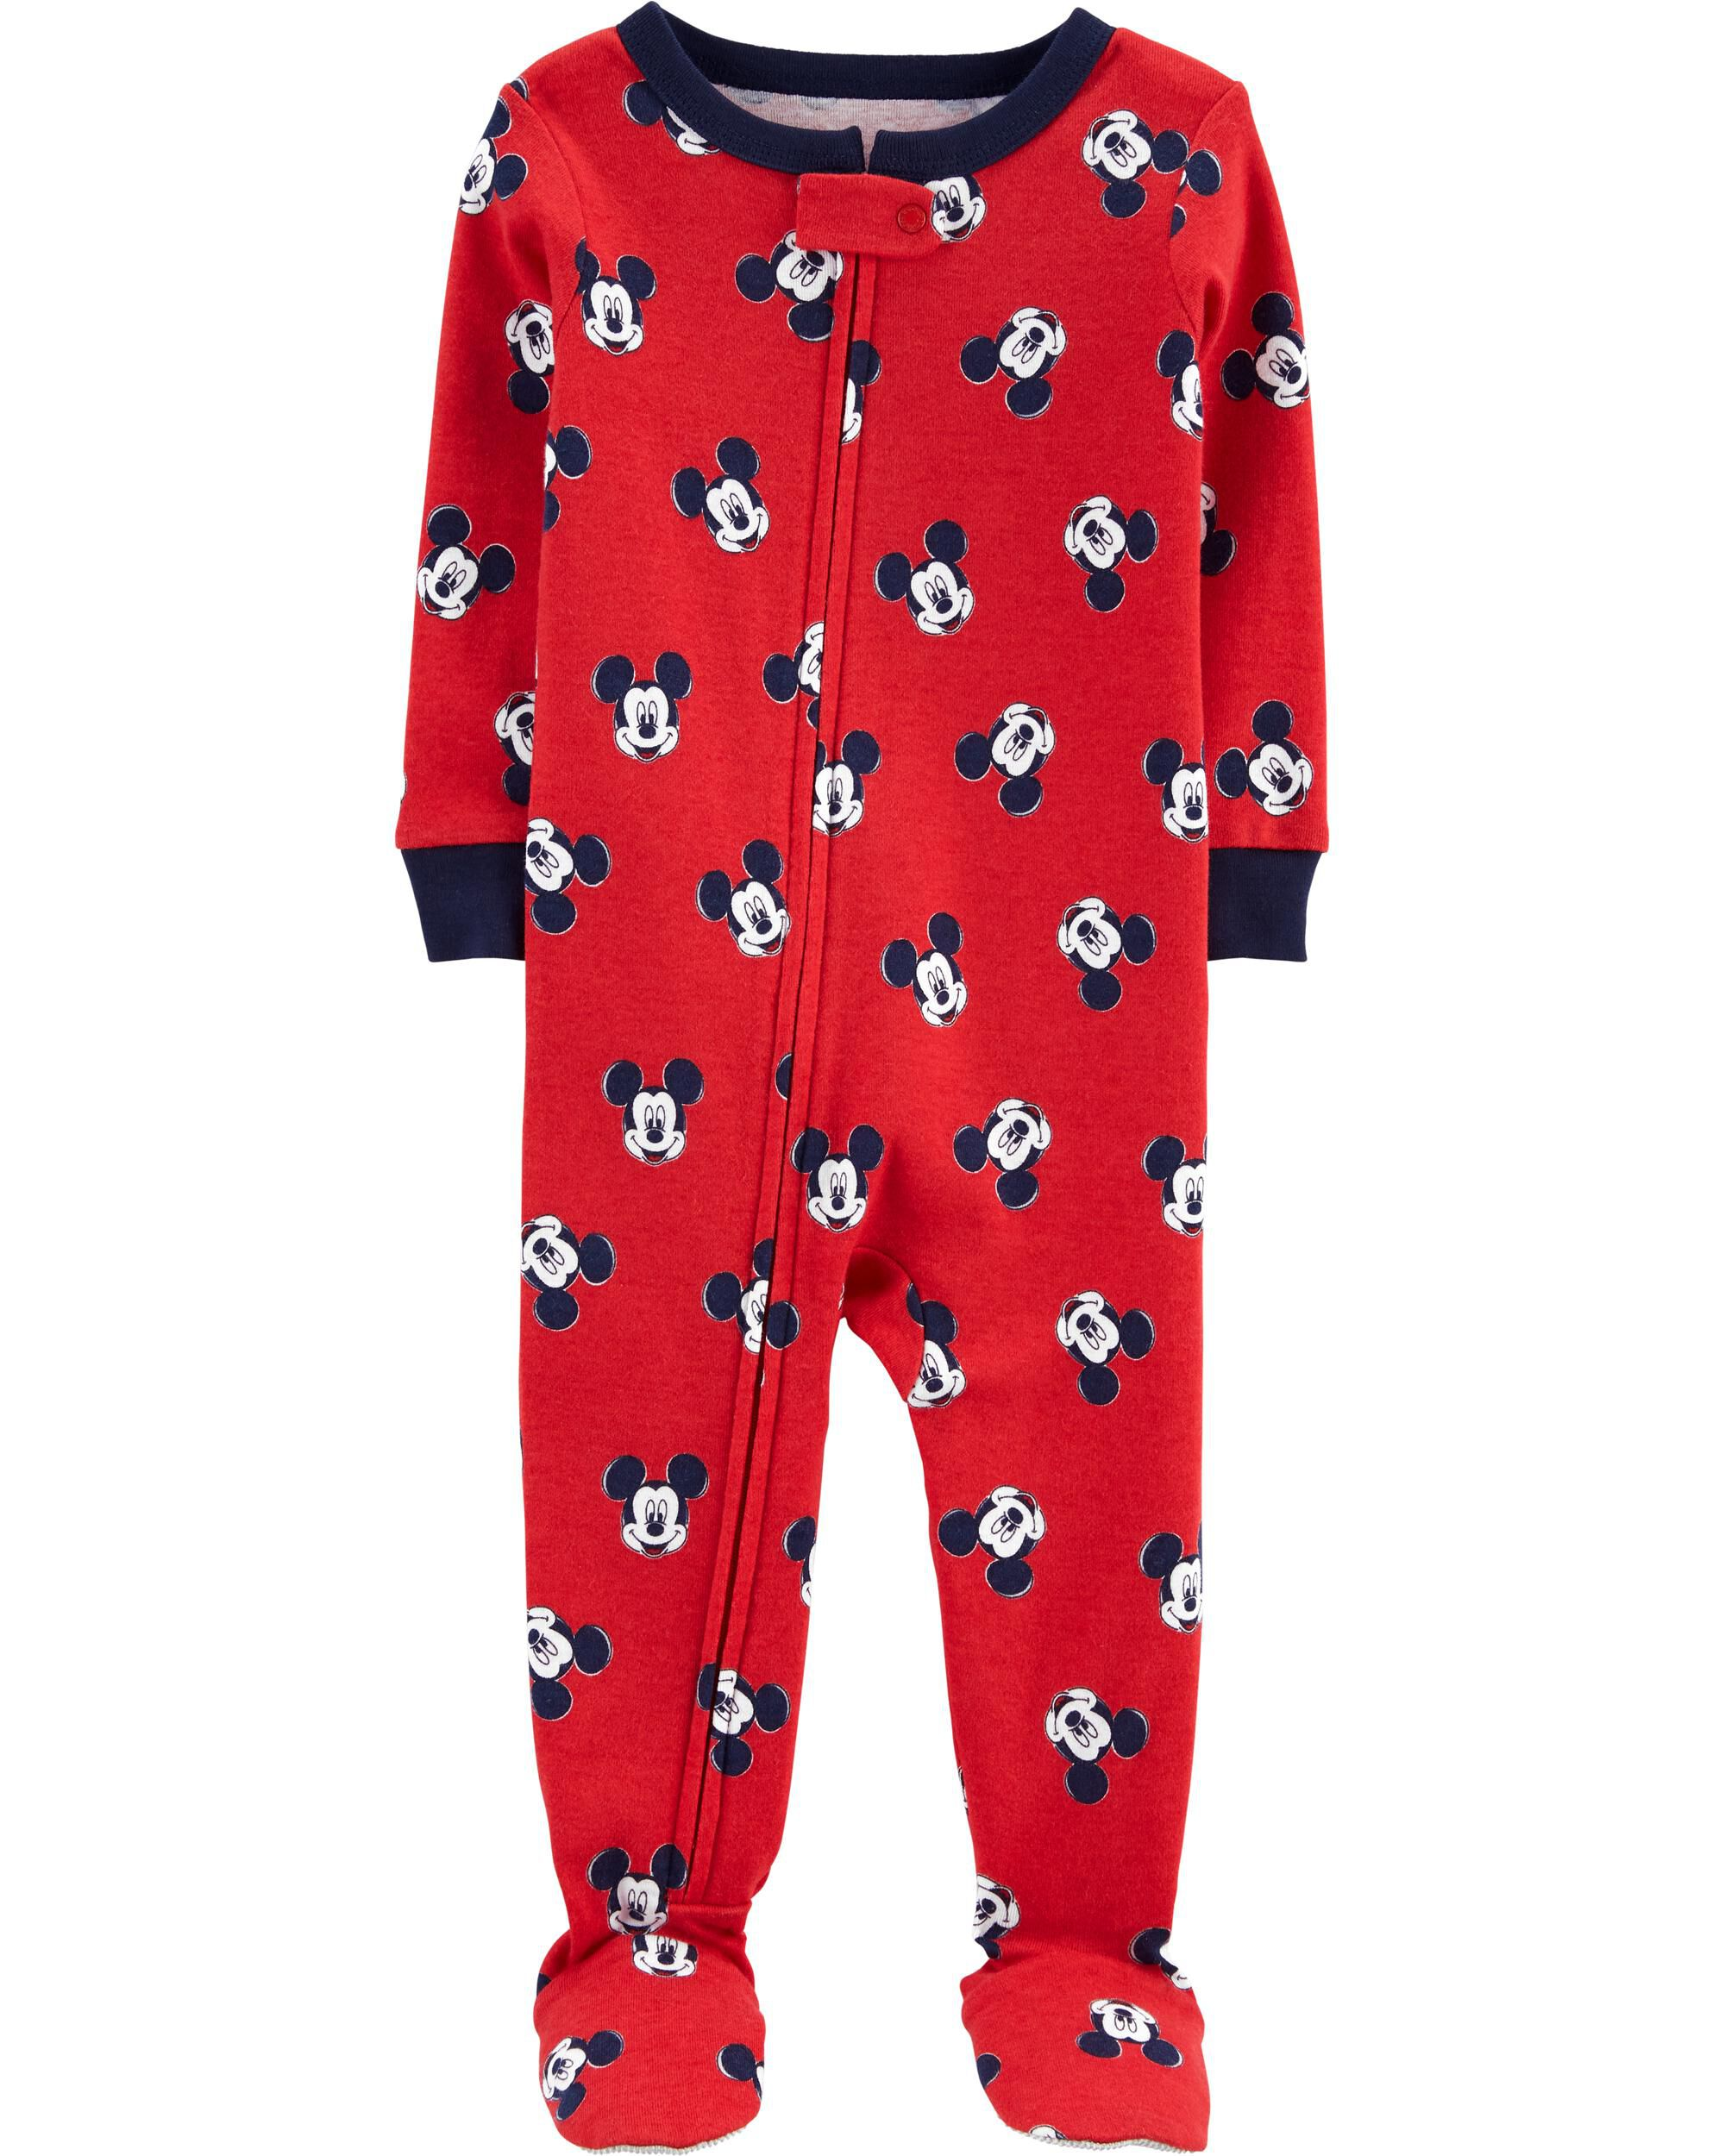 Carters 1-Piece Mickey Mouse 100% Cotton PJs